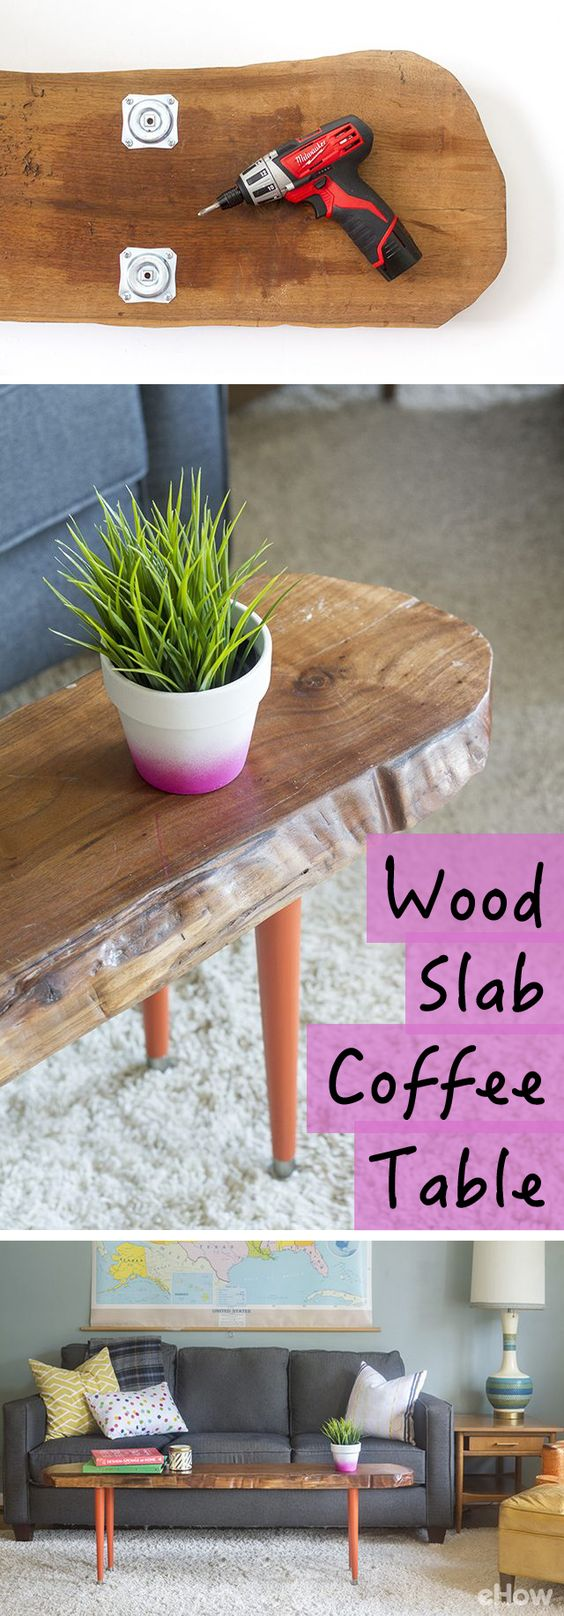 How to make a wood slab into a coffee table the o 39 jays for Wood slab coffee table diy